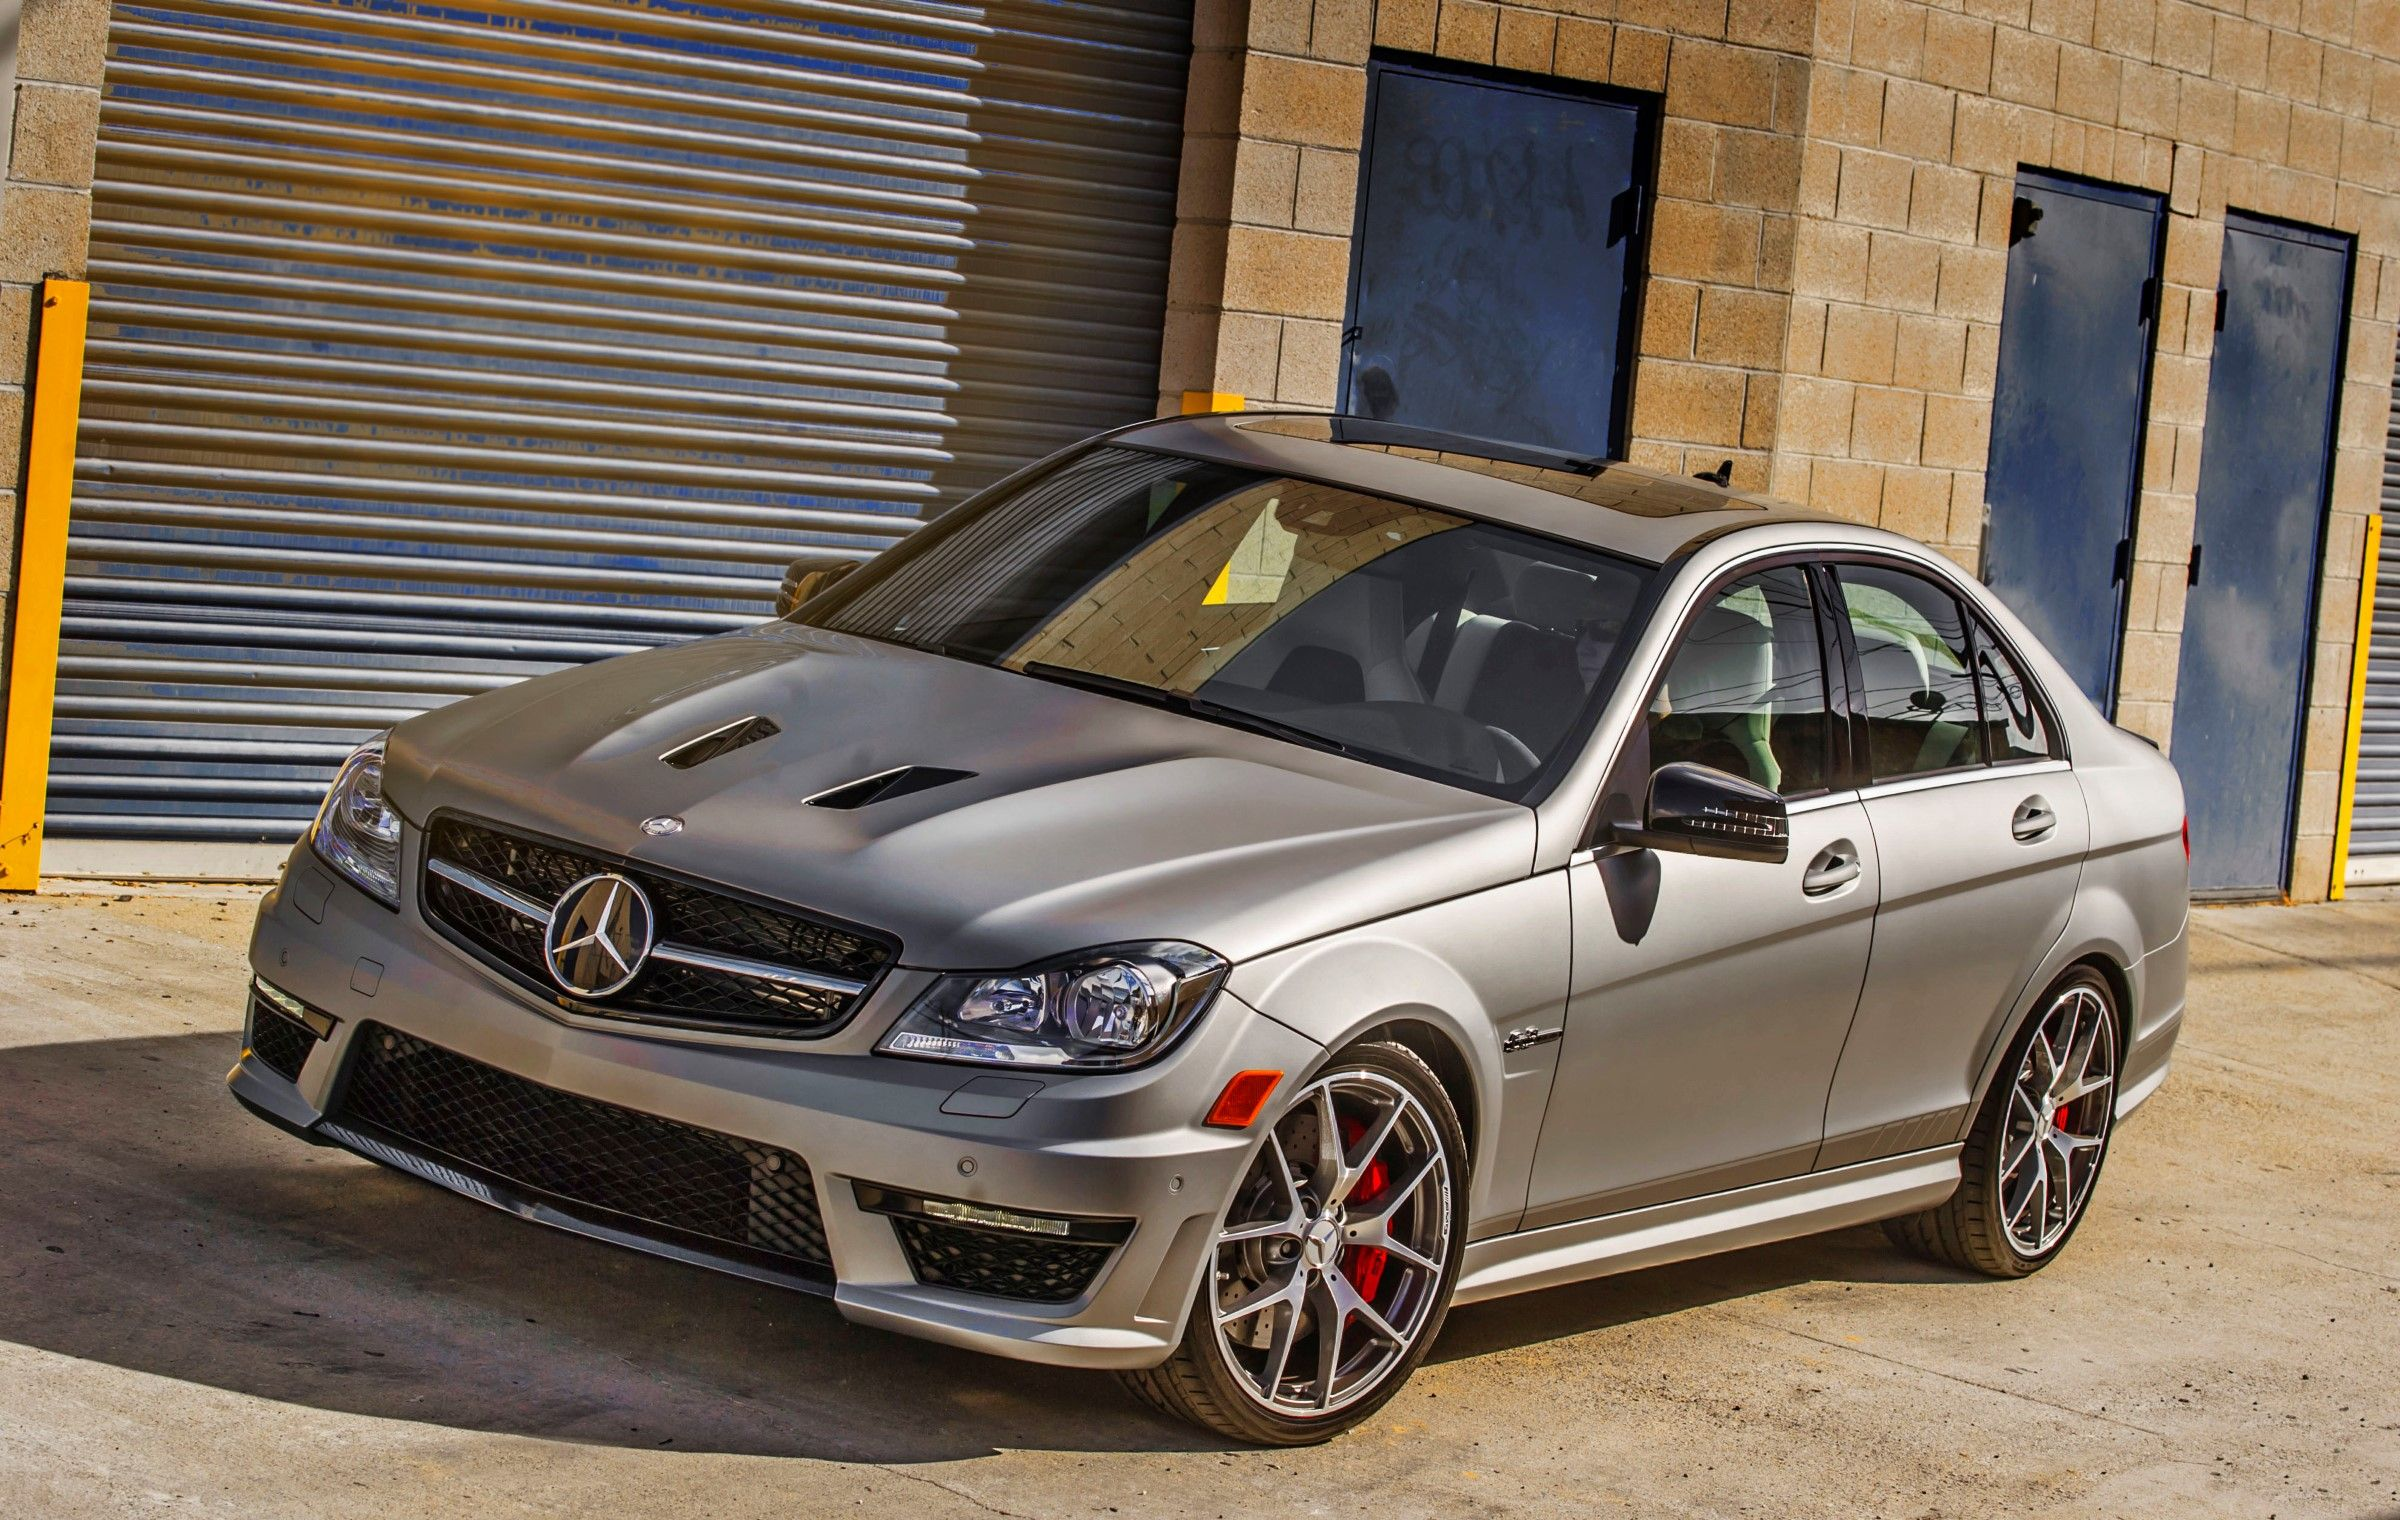 2014 Mercedes Benz C63 Amg Edition 507 Sedan With Images